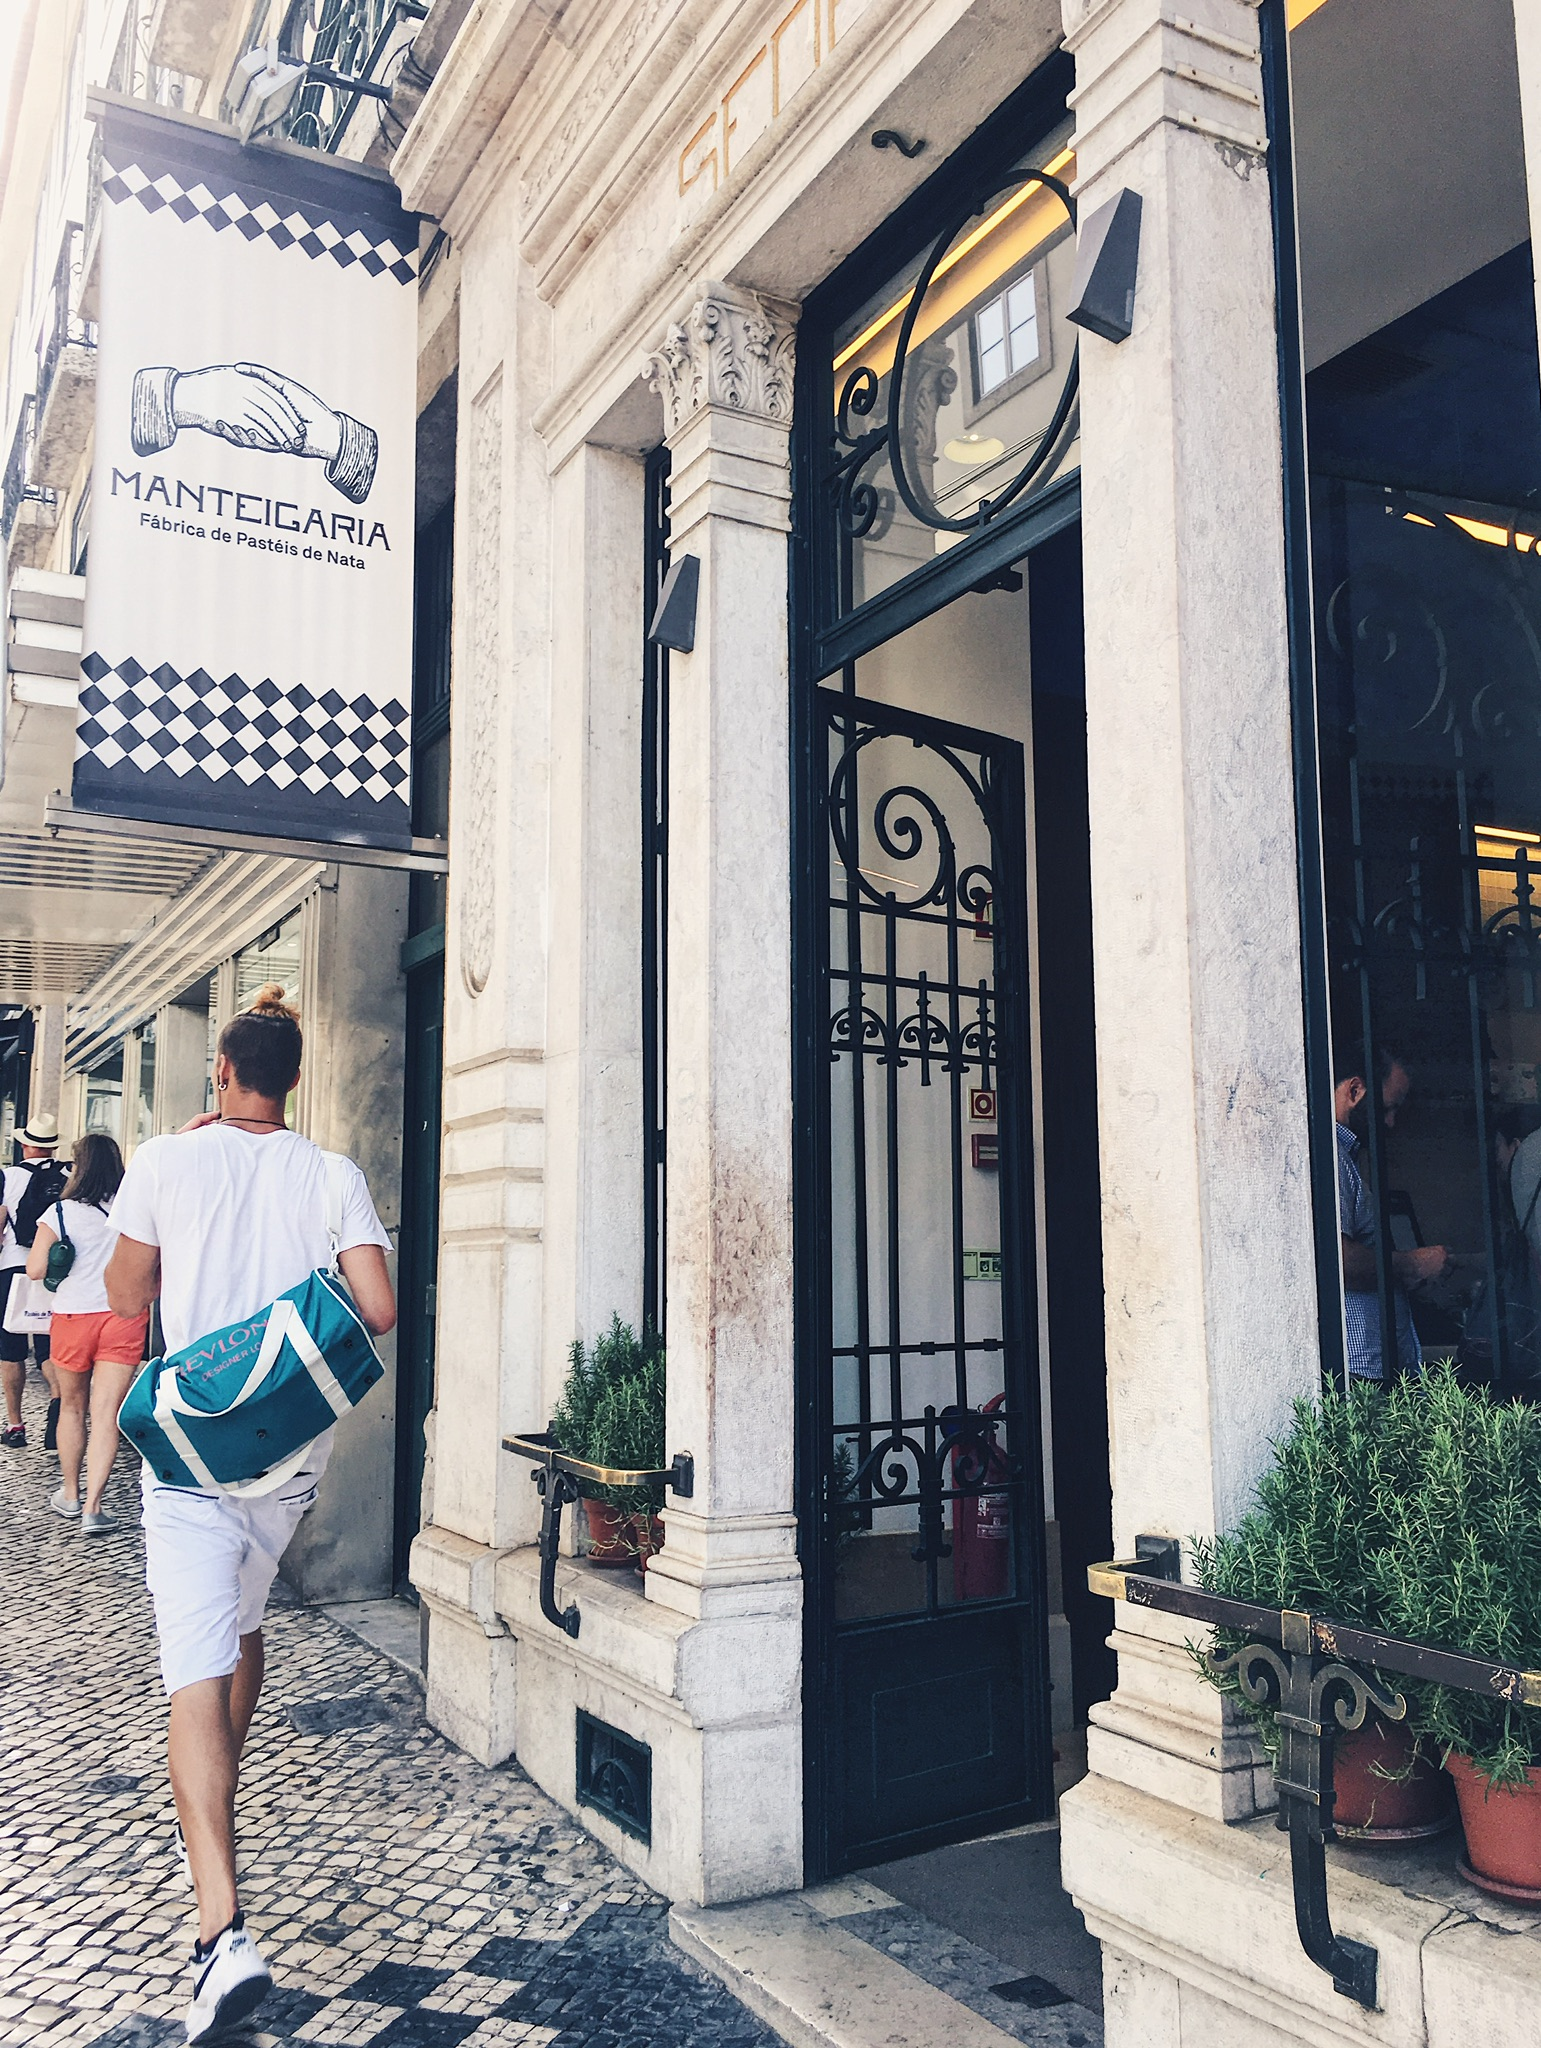 Two things found all over Lisbon: man-buns and pasteis de nata